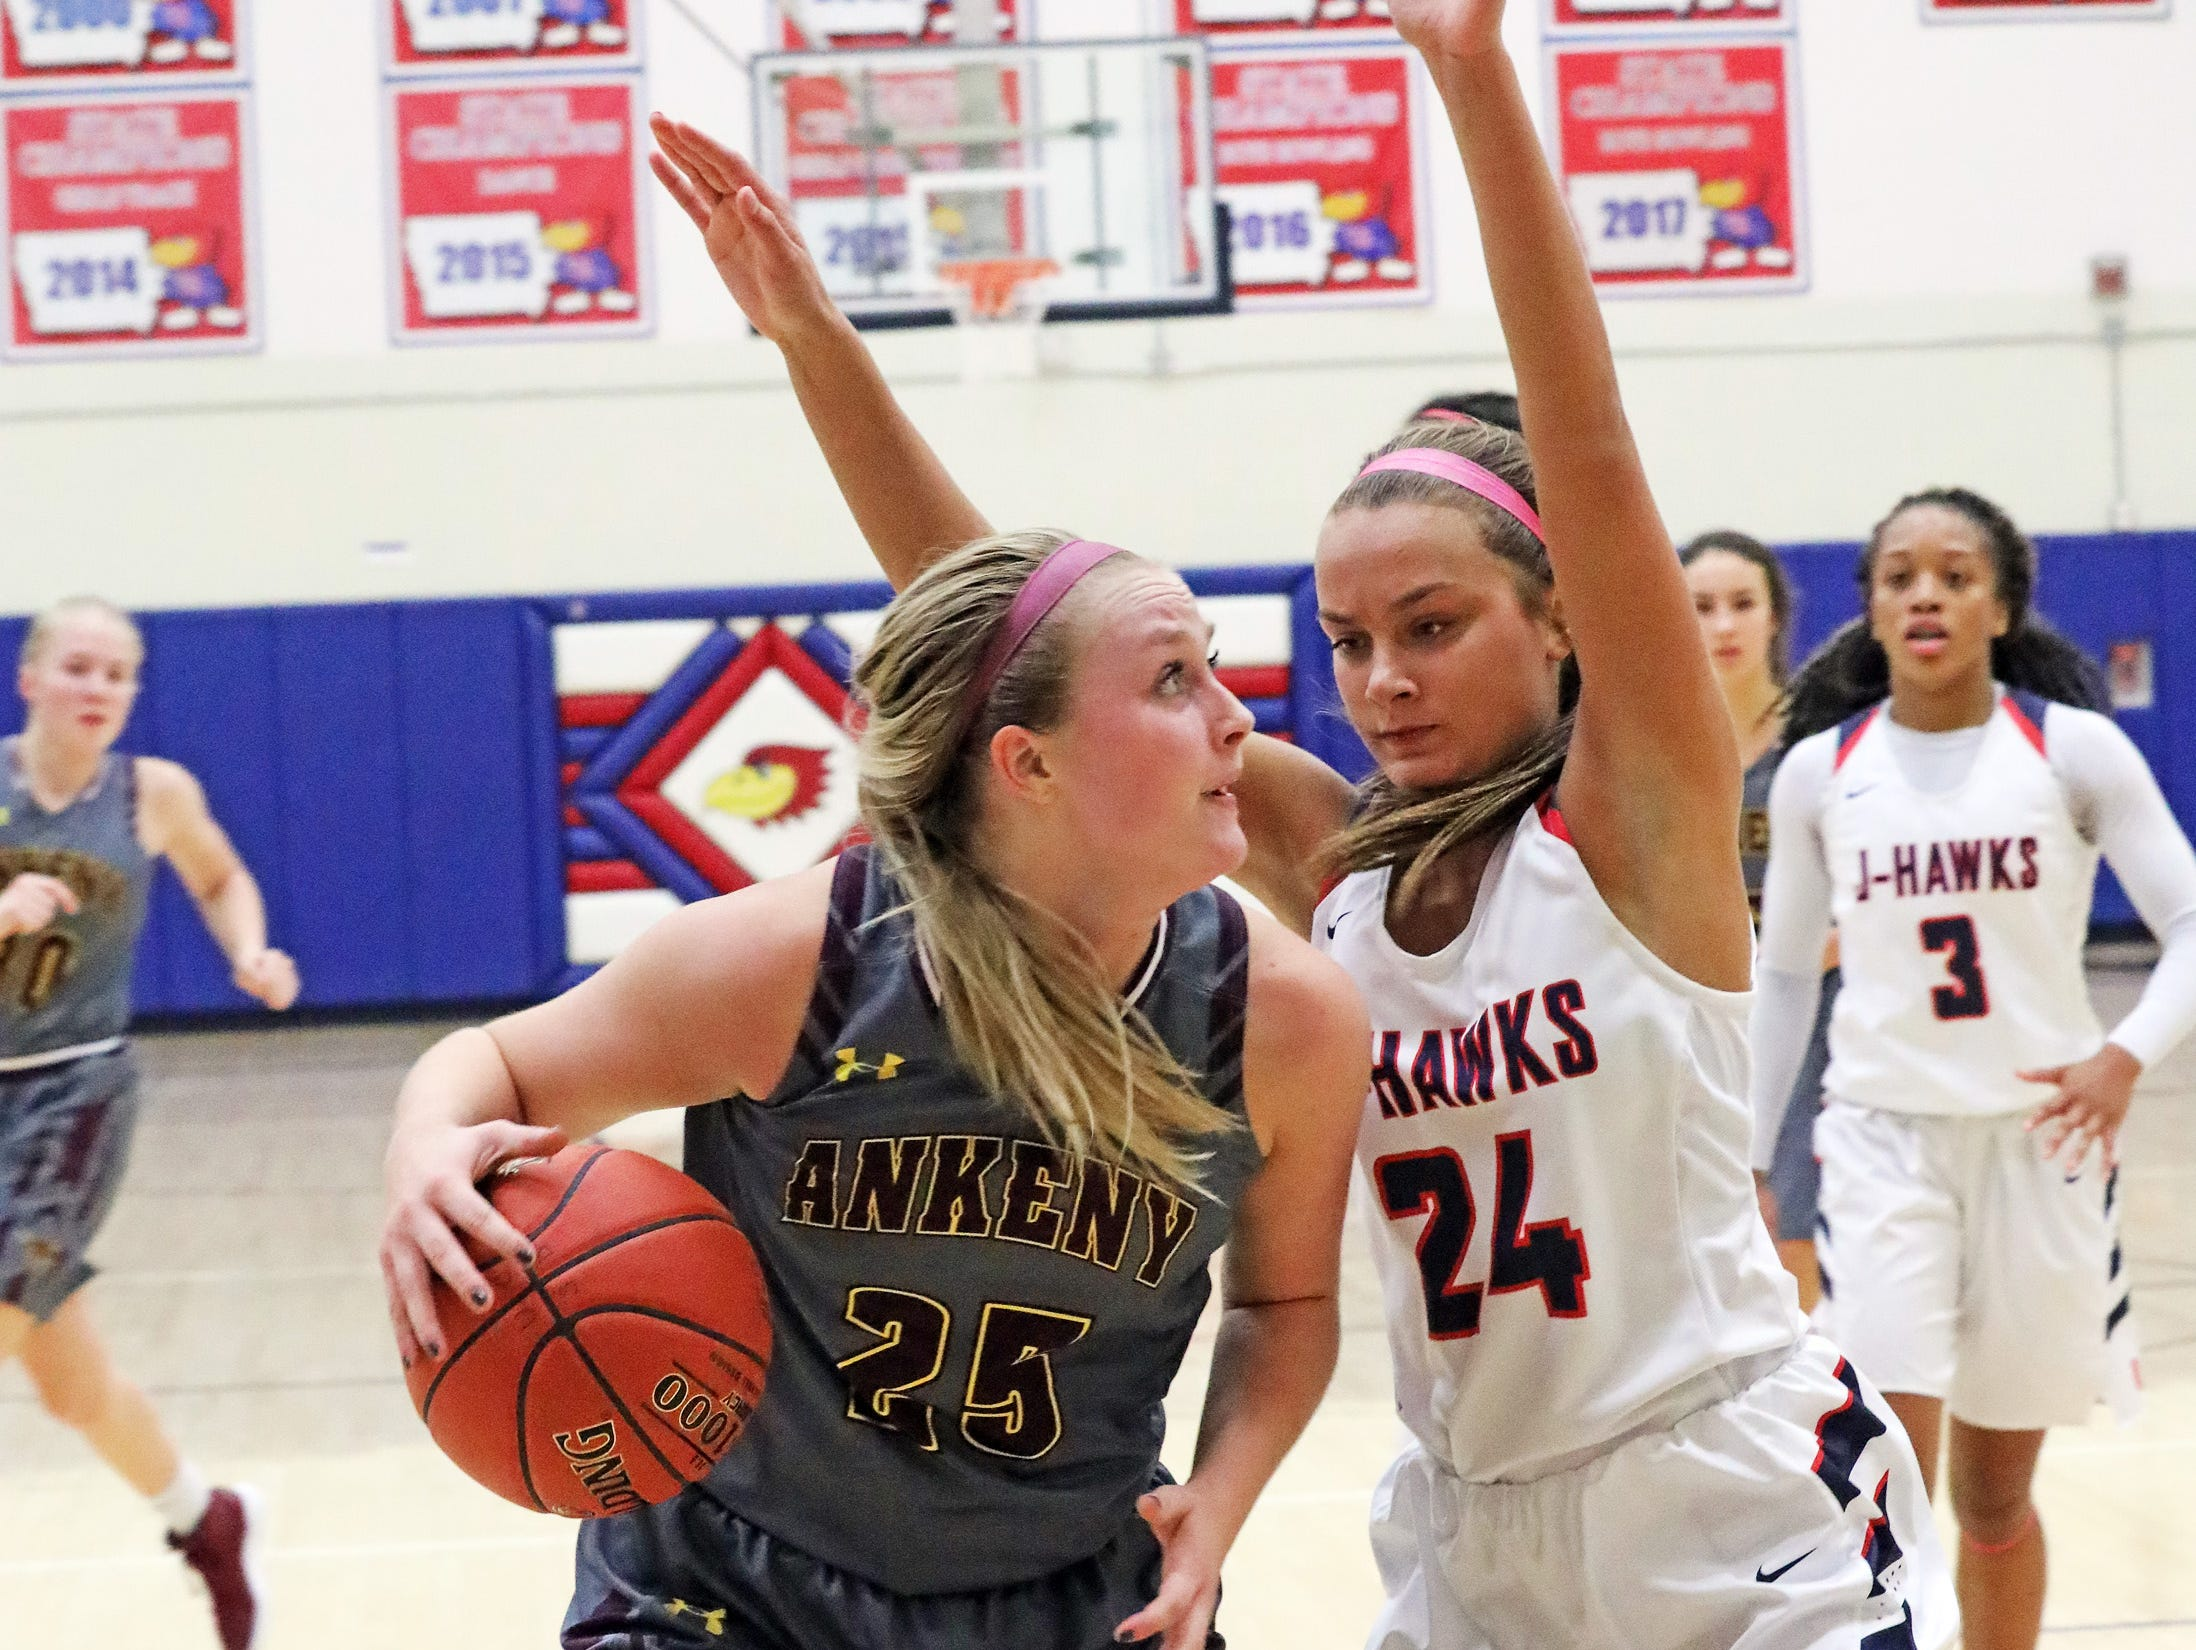 Ankeny senior Sara McCullough tries to get past the defense of Urbandale sophomore forward Madi Lynch as the Ankeny Hawkettes compete against the Urbandale J-Hawks in high school basketball on Friday, Dec. 14, 2018 at Urbandale High School. Ankeny won 46 to 40.